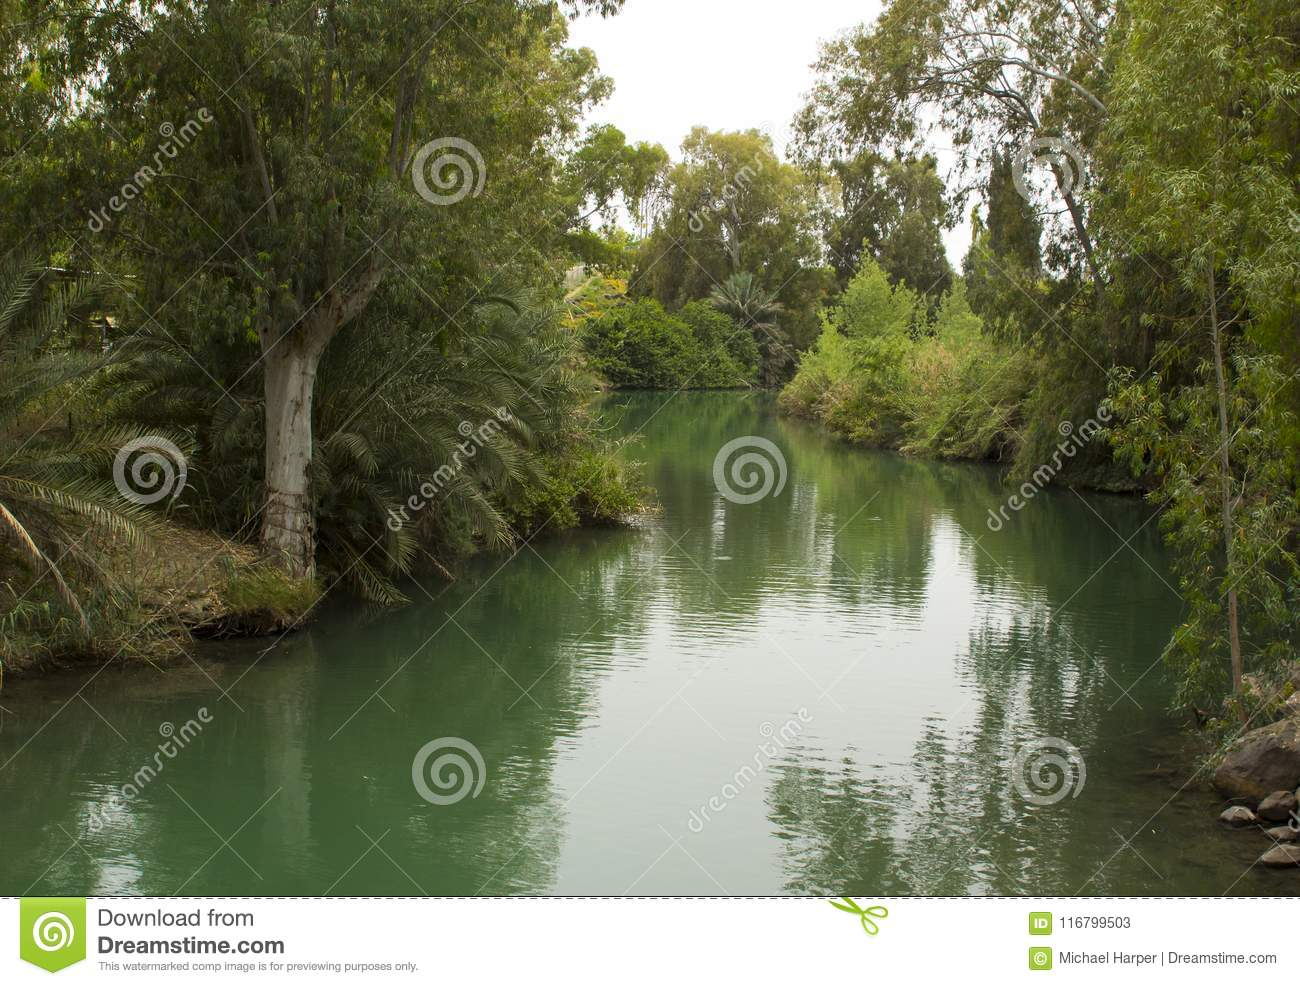 e95769636e93 The calm running River Jordan at the Yardenit Baptismal Site the  traditional place of John the Baptist and his ministry. The facility can be  used for ...